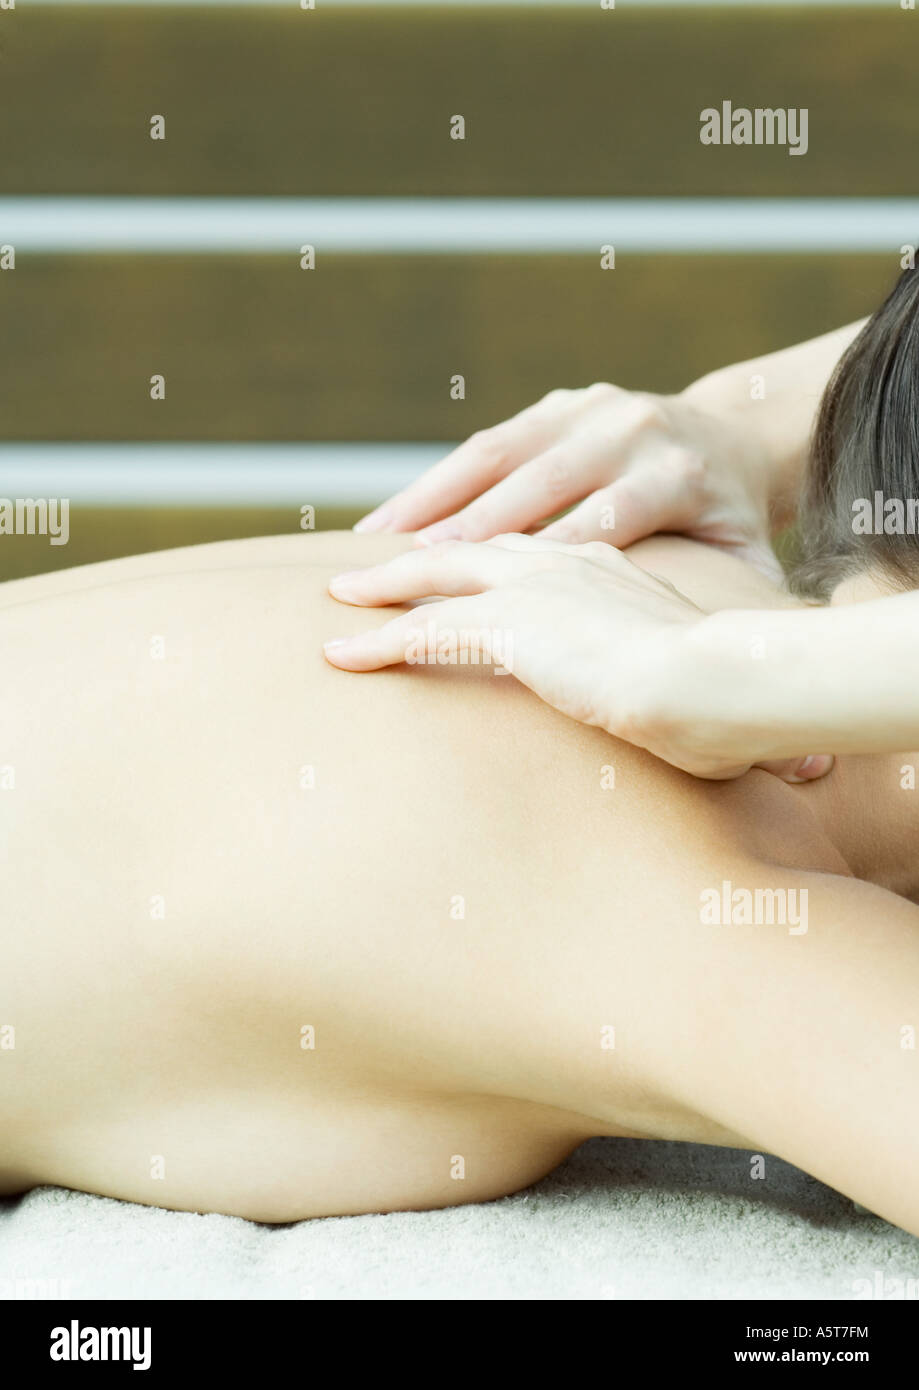 Woman having massage - Stock Image